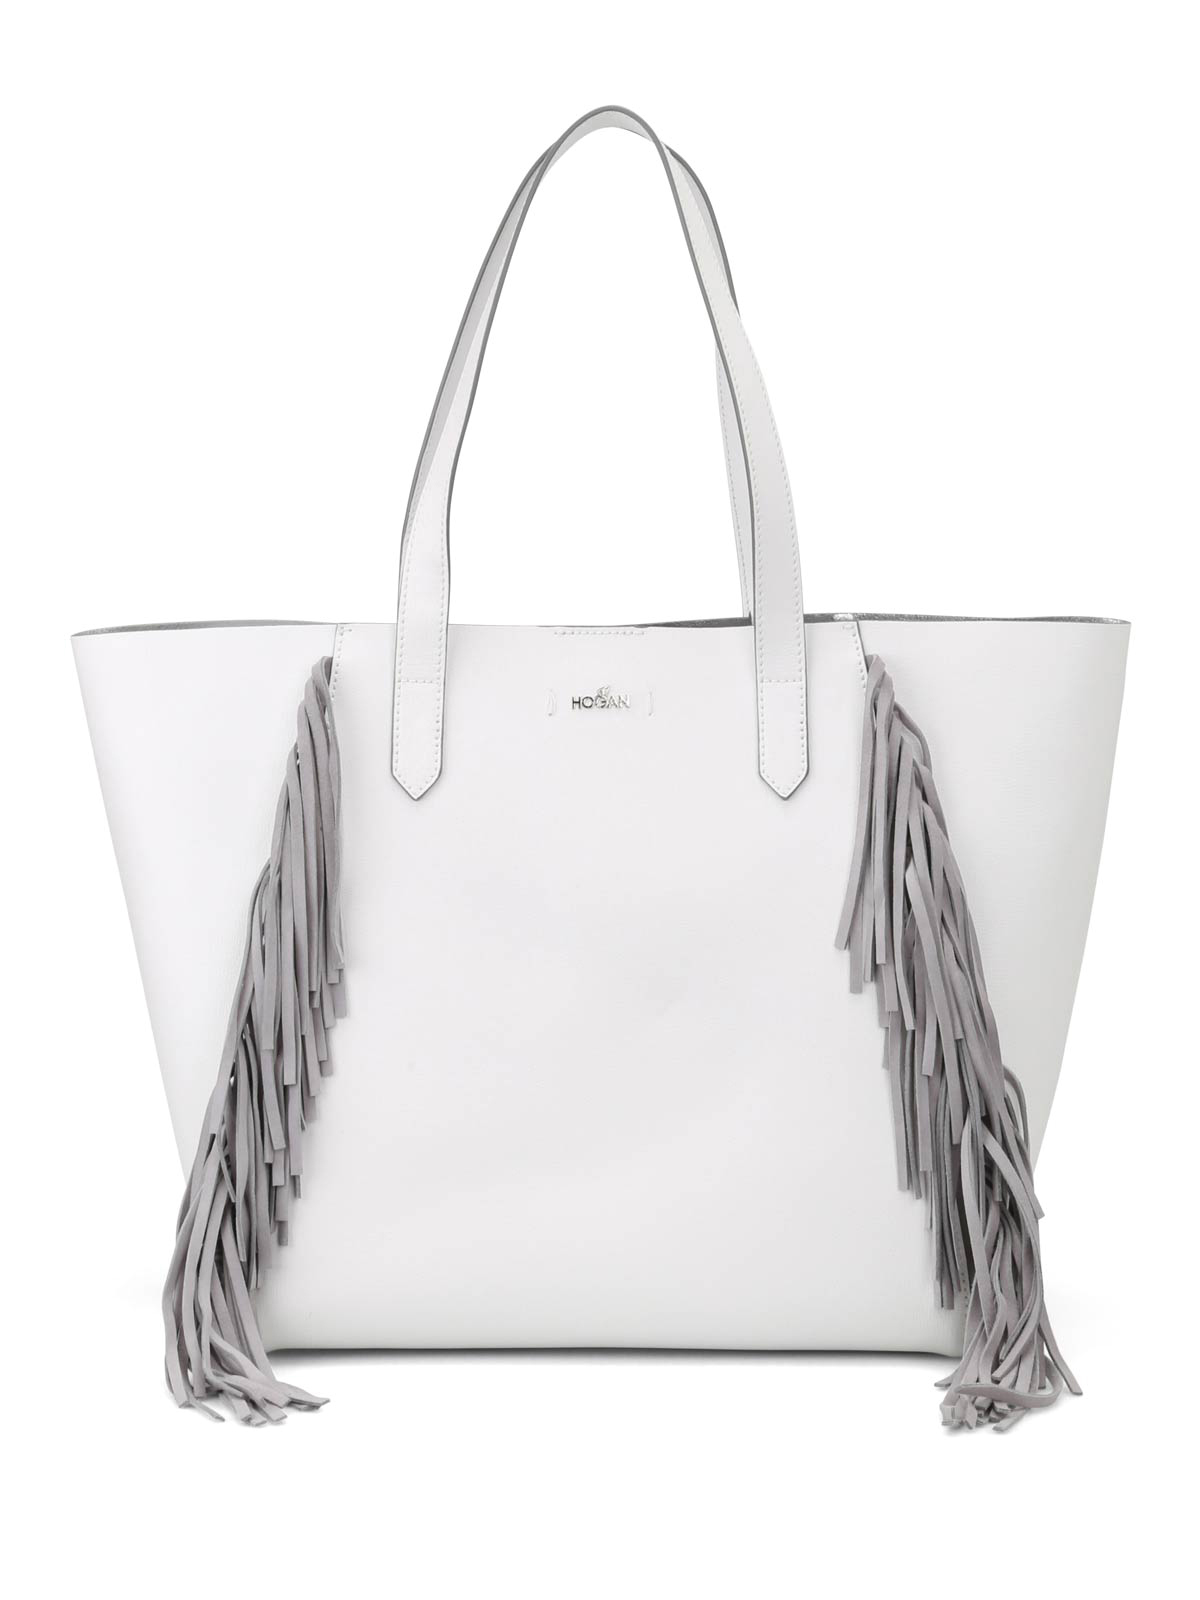 Hogan White tote with suede fringes COIChAh